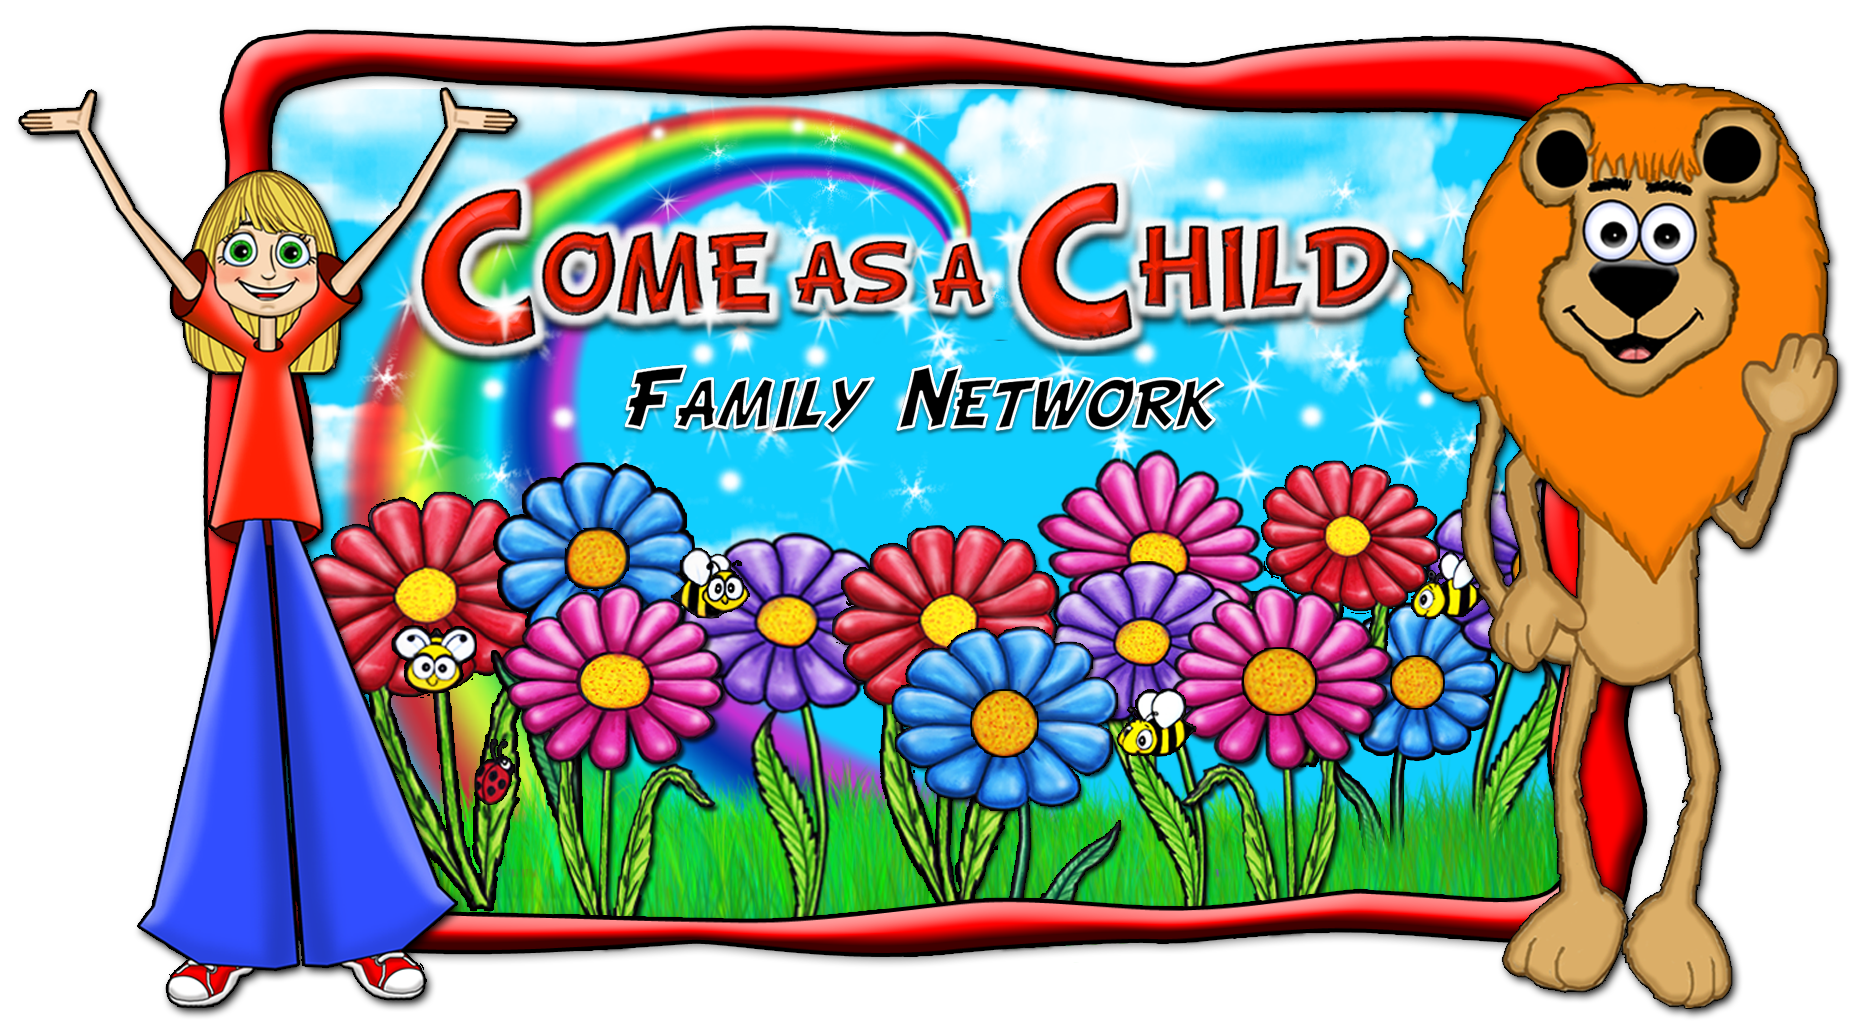 Come+As+A+Child+LOGO+BANNER+(NEW!).png